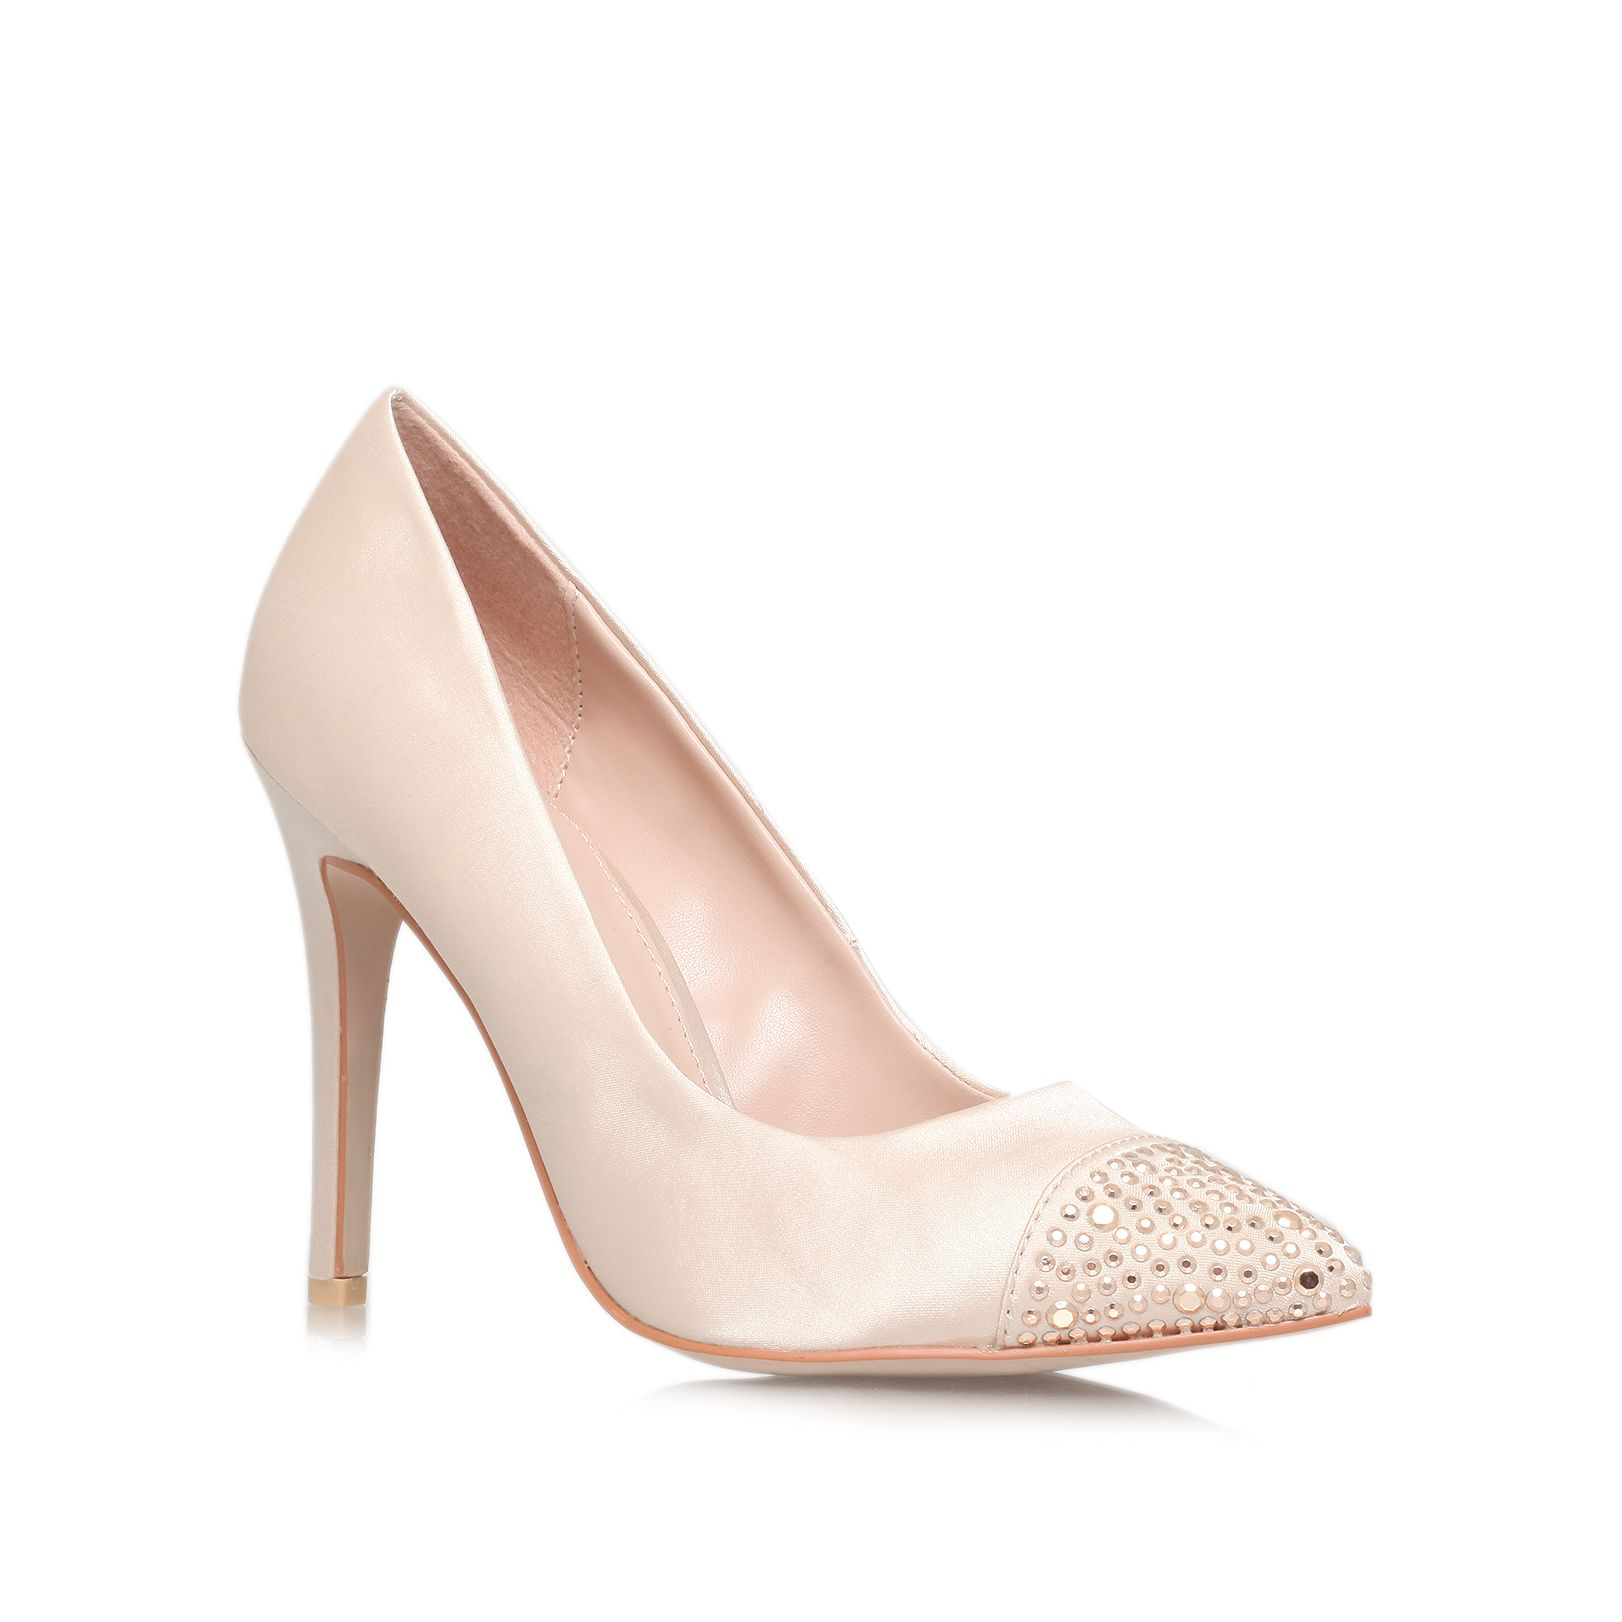 Lacey high heeled court shoes